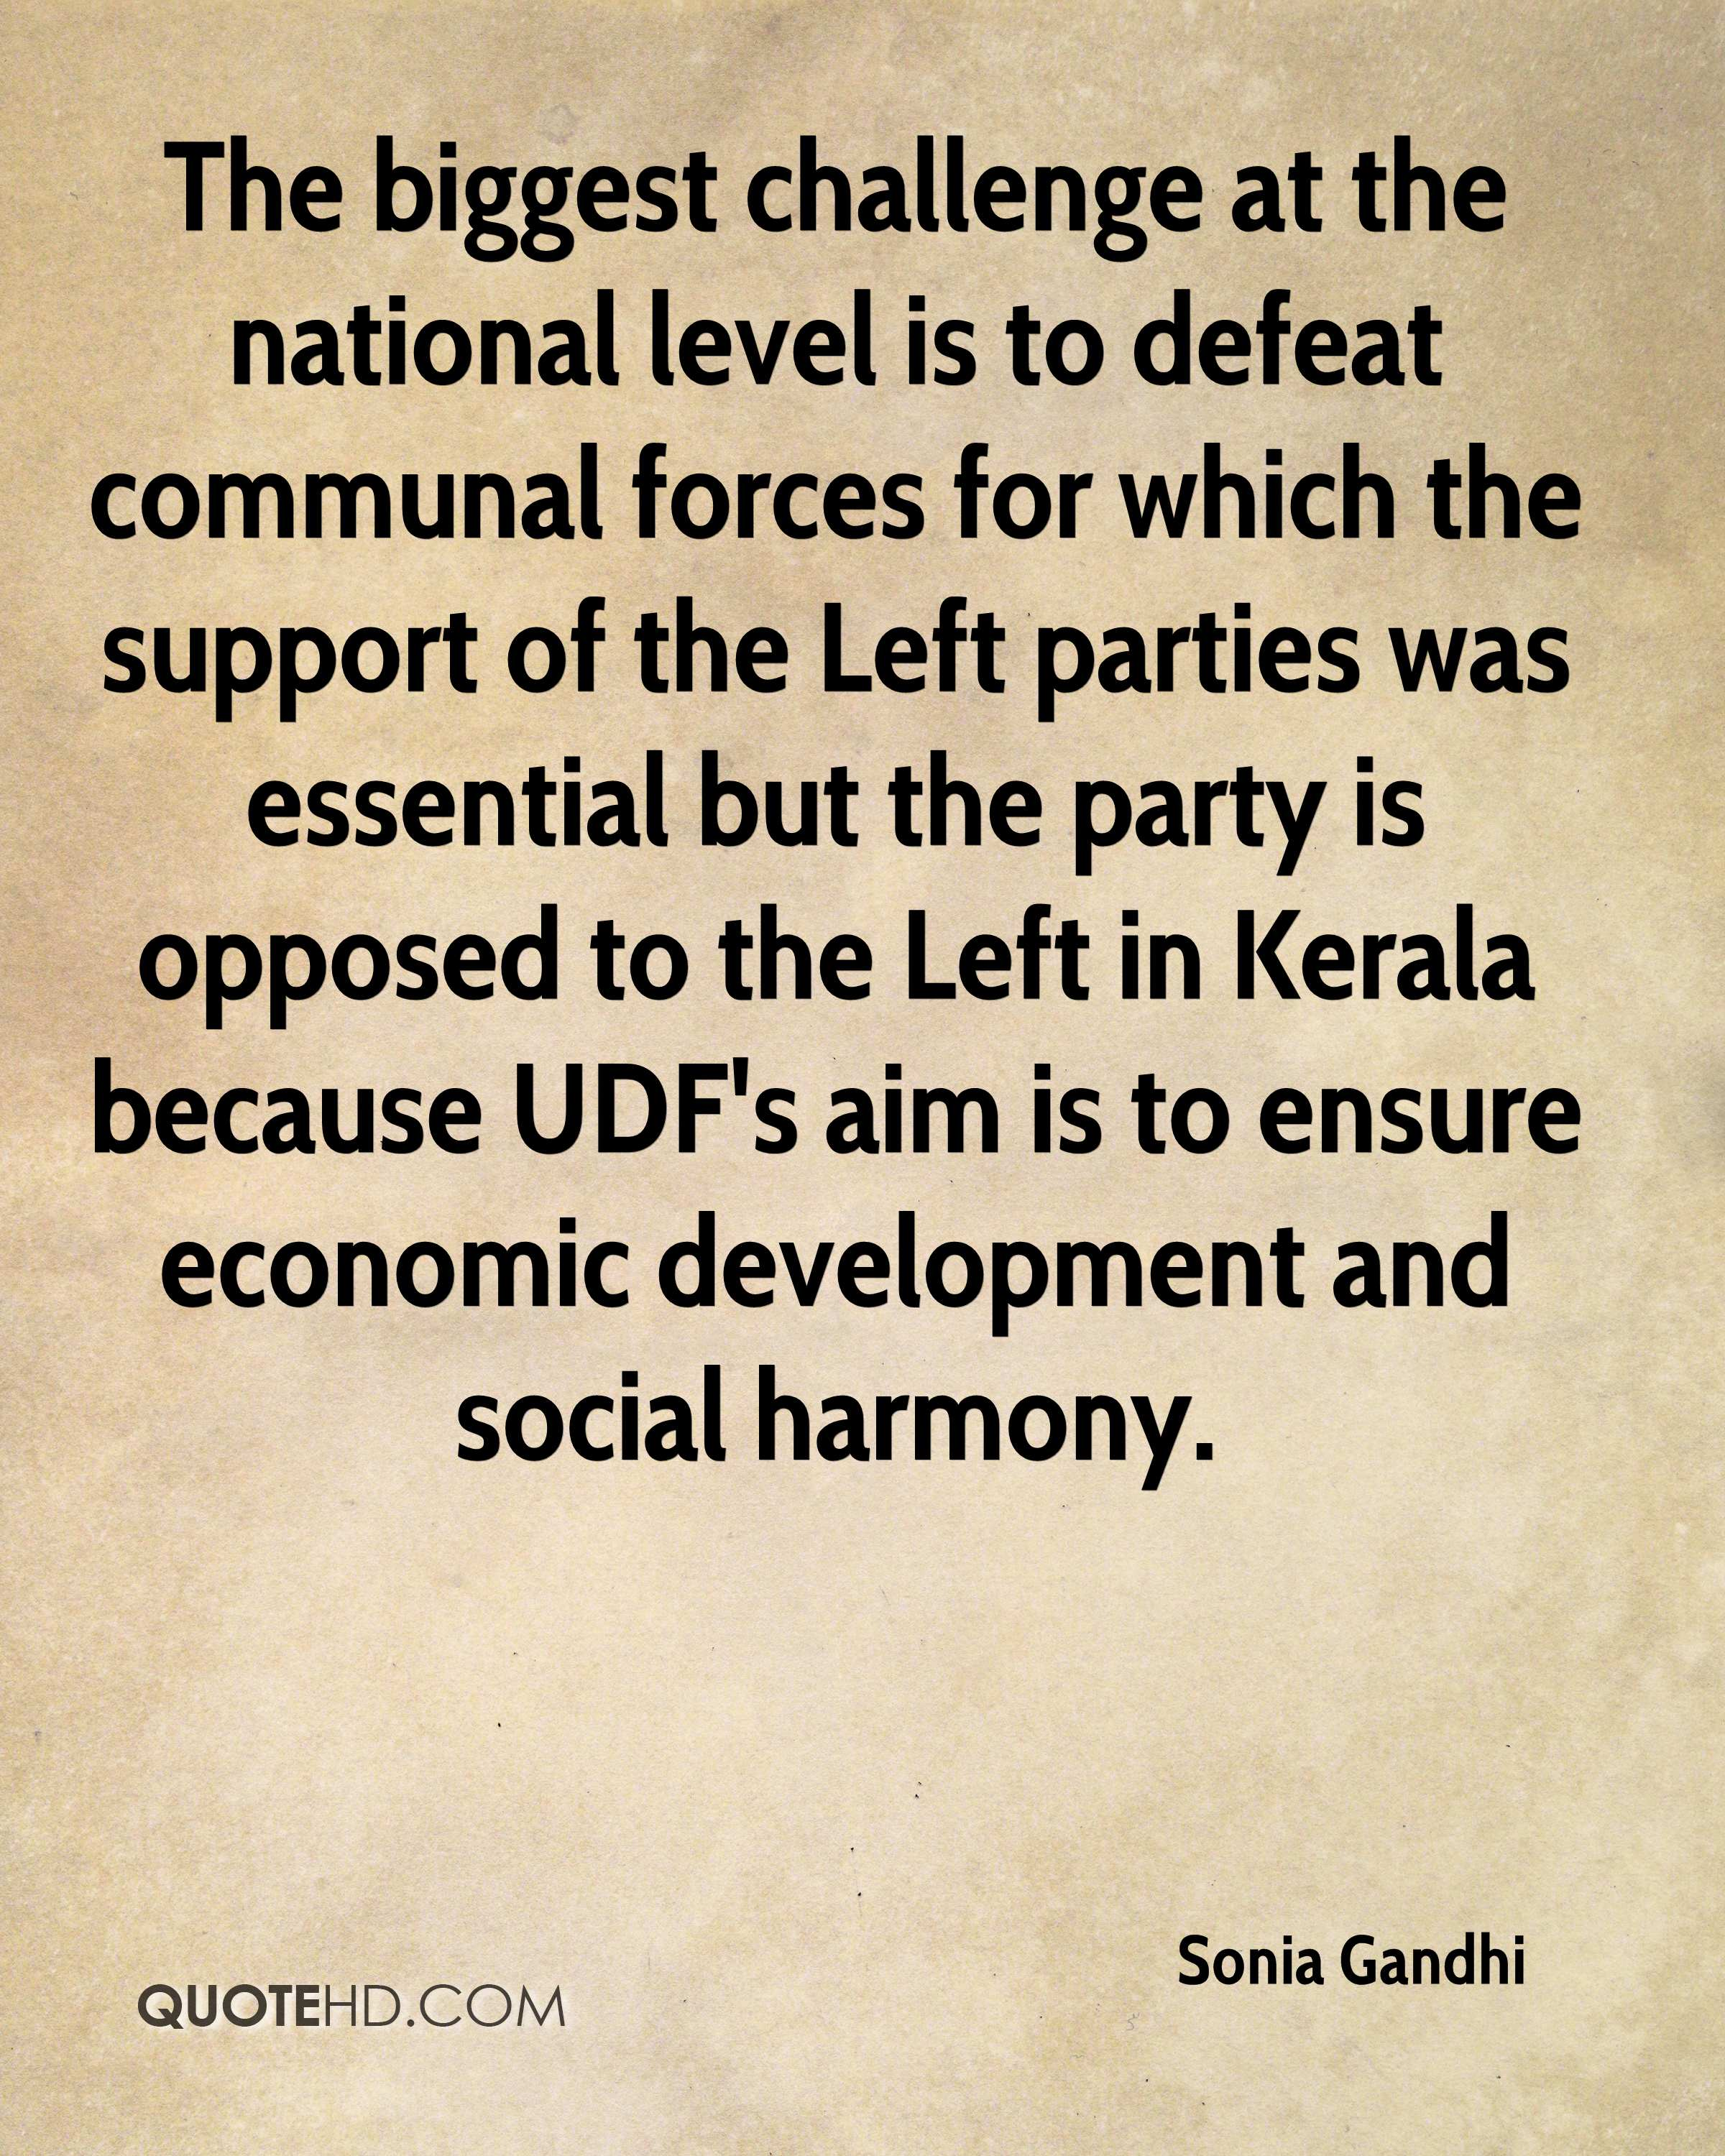 The biggest challenge at the national level is to defeat communal forces for which the support of the Left parties was essential but the party is opposed to the Left in Kerala because UDF's aim is to ensure economic development and social harmony.